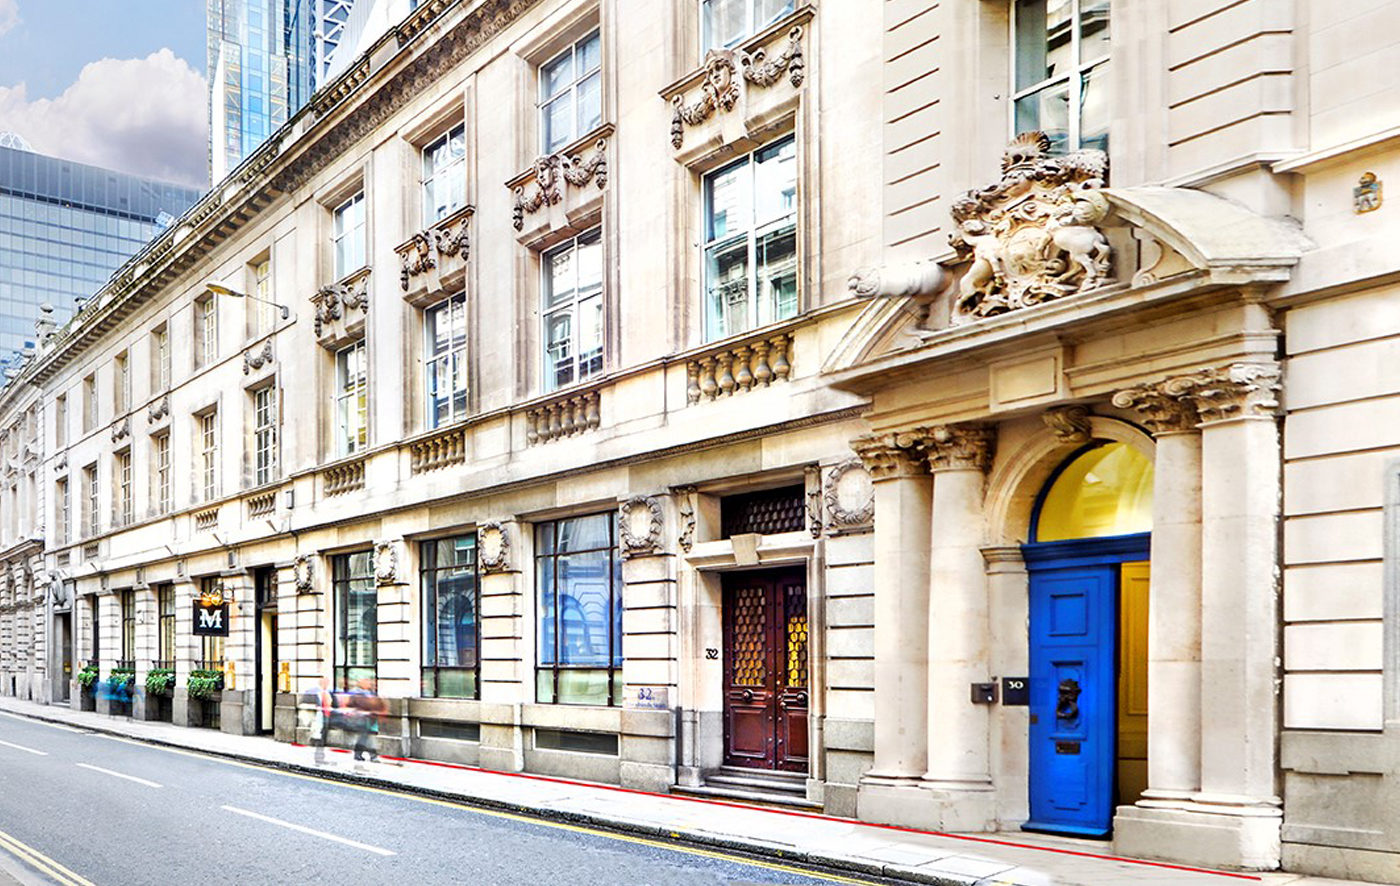 32 Threadneedle Street exterior view